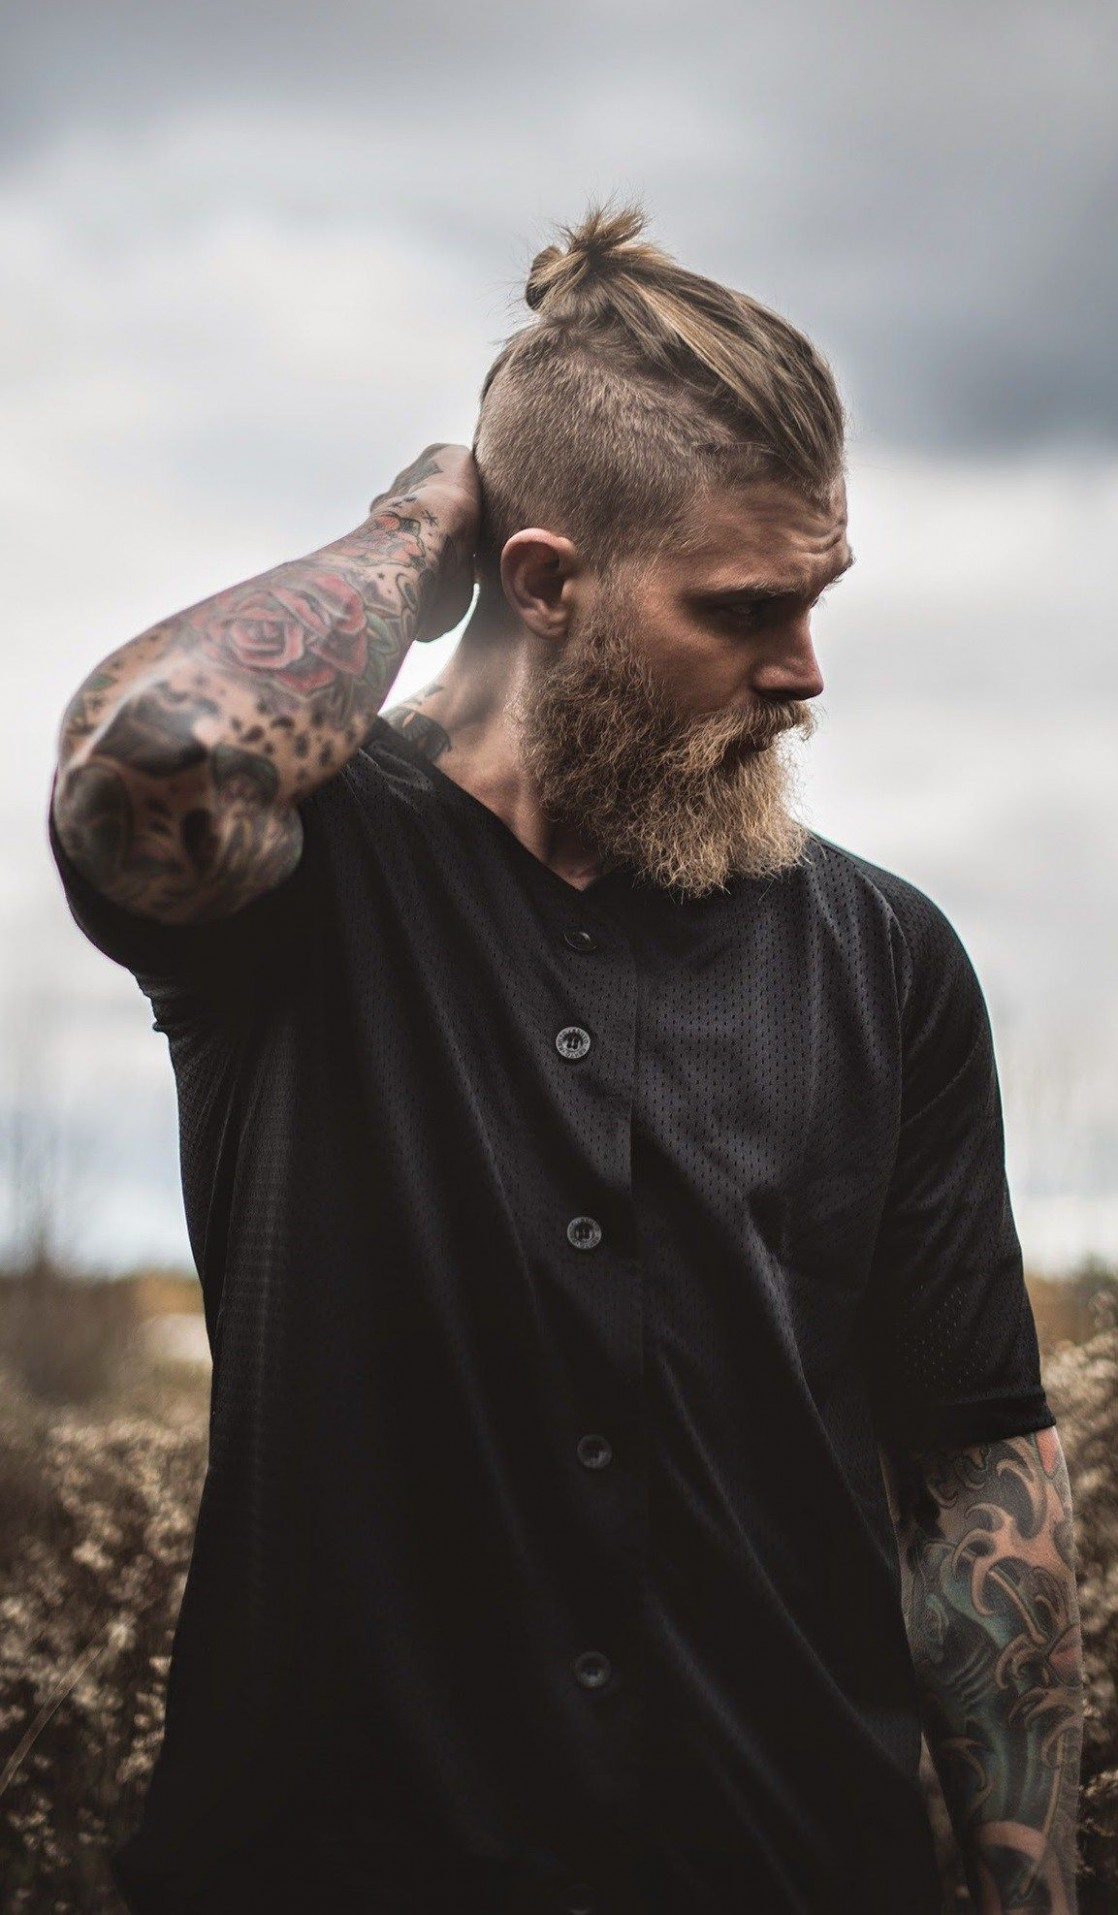 Is There Really A Man Bun For Short Hair? Let Us Find Out What Men Short Hair Man Bun